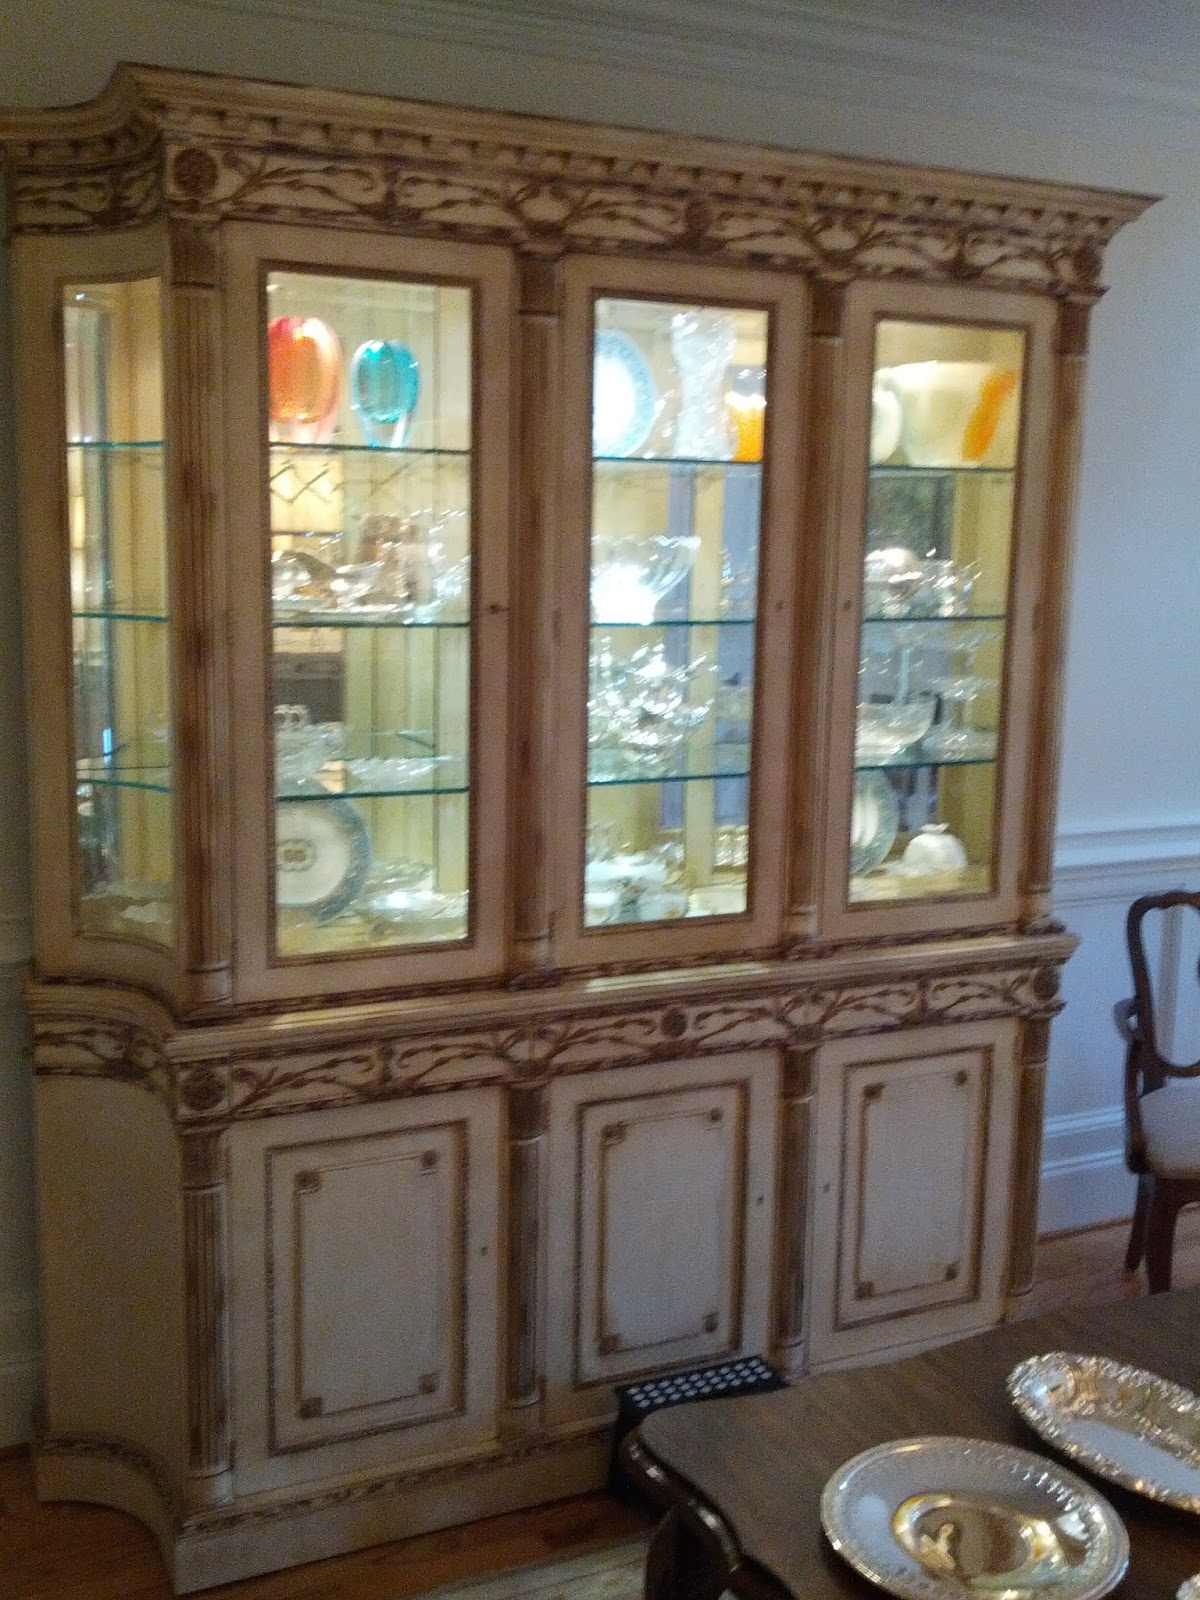 Mark sunderland on design how to decorate a china cabinet How to decorate top of cabinets